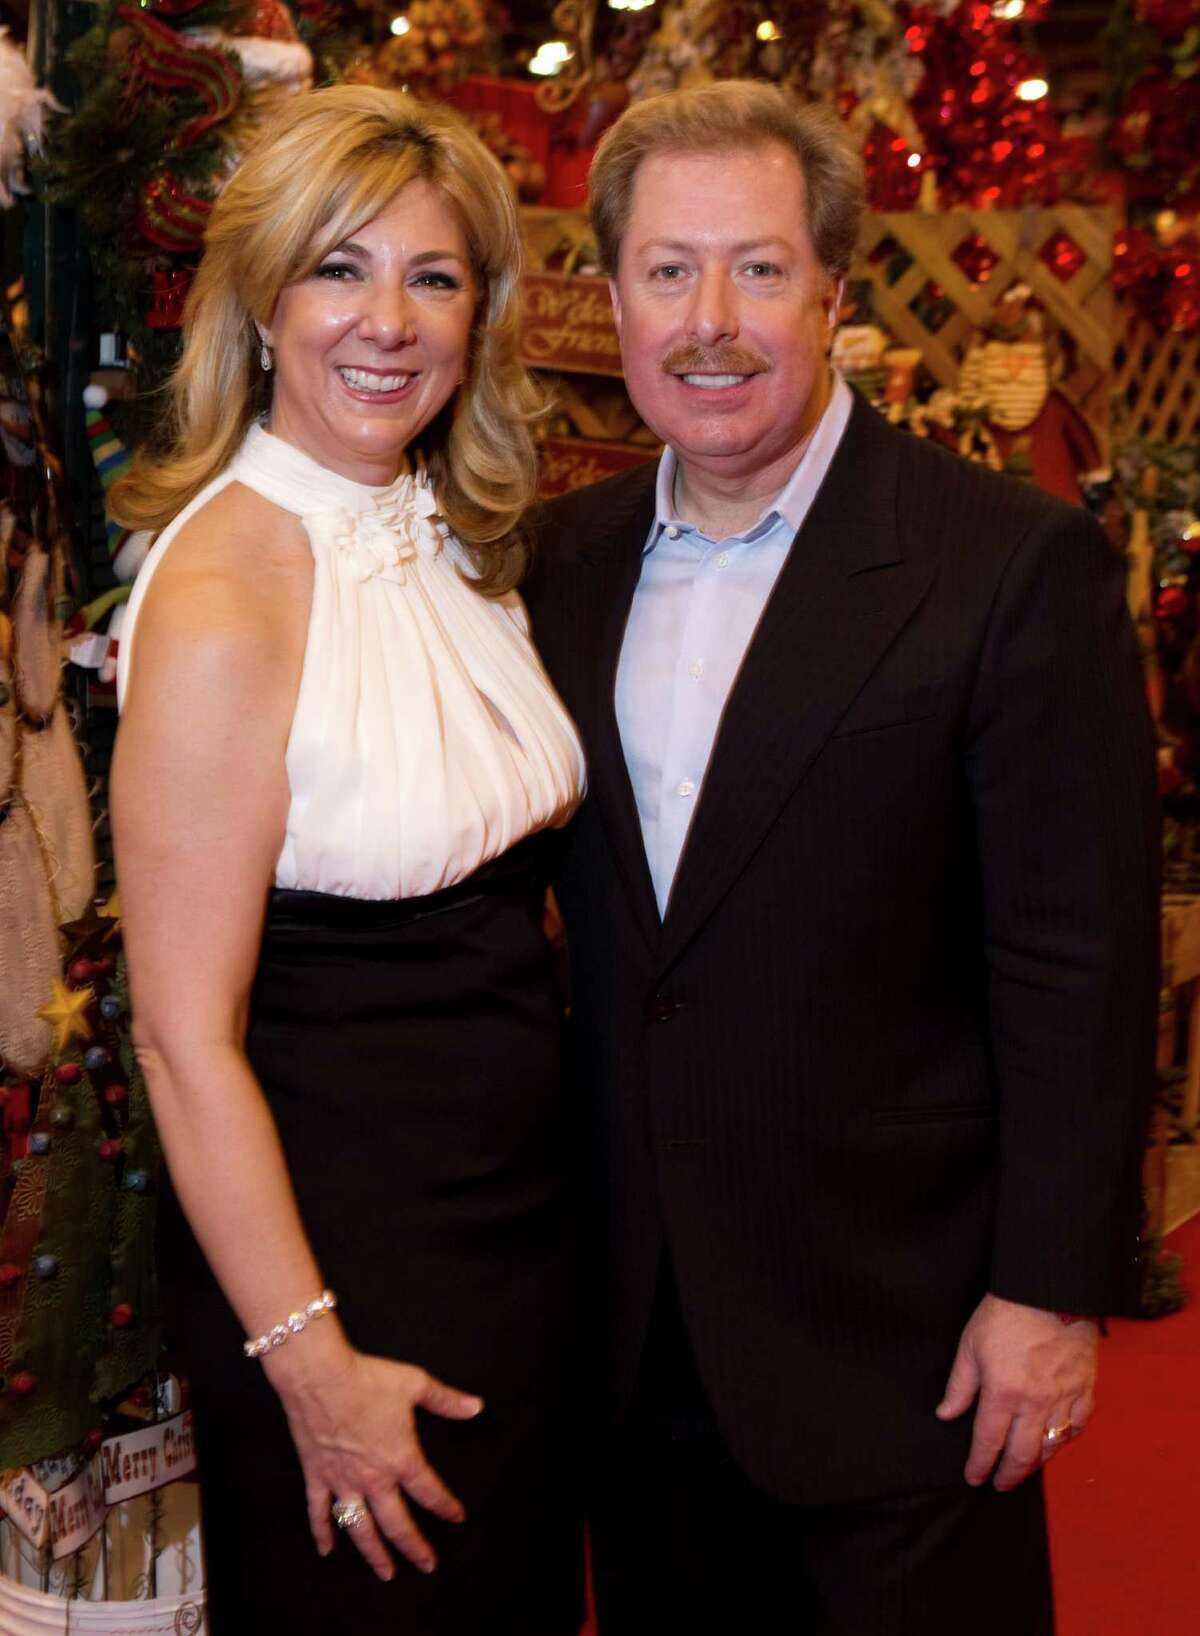 Denise and Sam Malone pose for a photo during the Nutcracker Market preview party at Reliant Center Wednesday, Nov. 10, 2010, in Houston. ( Brett Coomer / Houston Chronicle )